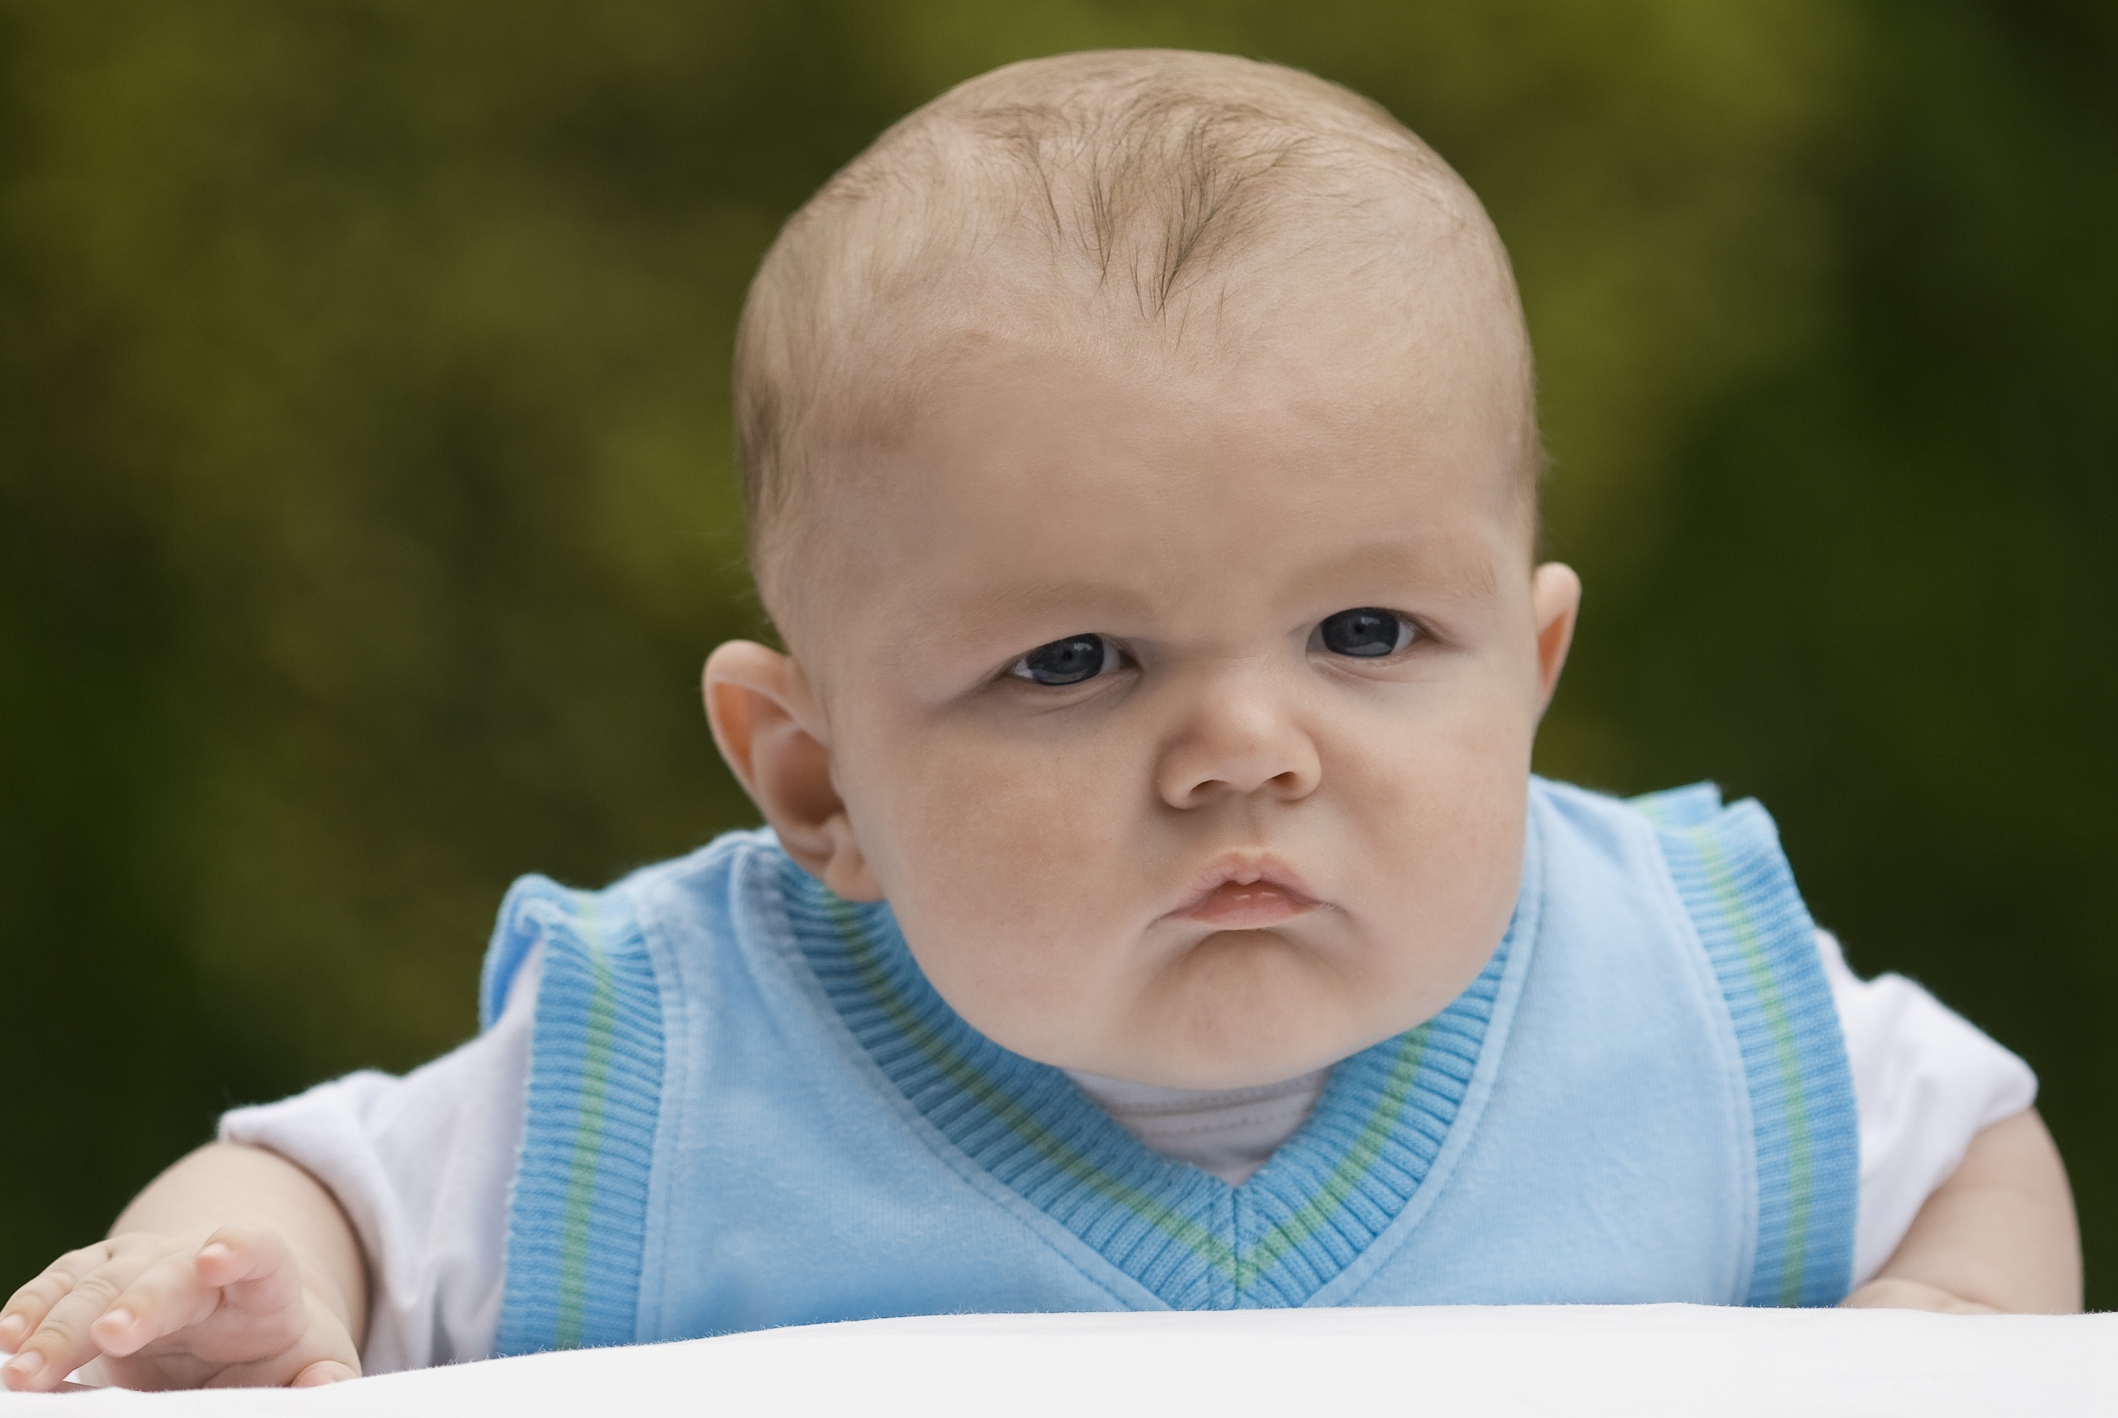 What Are the Causes of Hand Tremors in Infants?